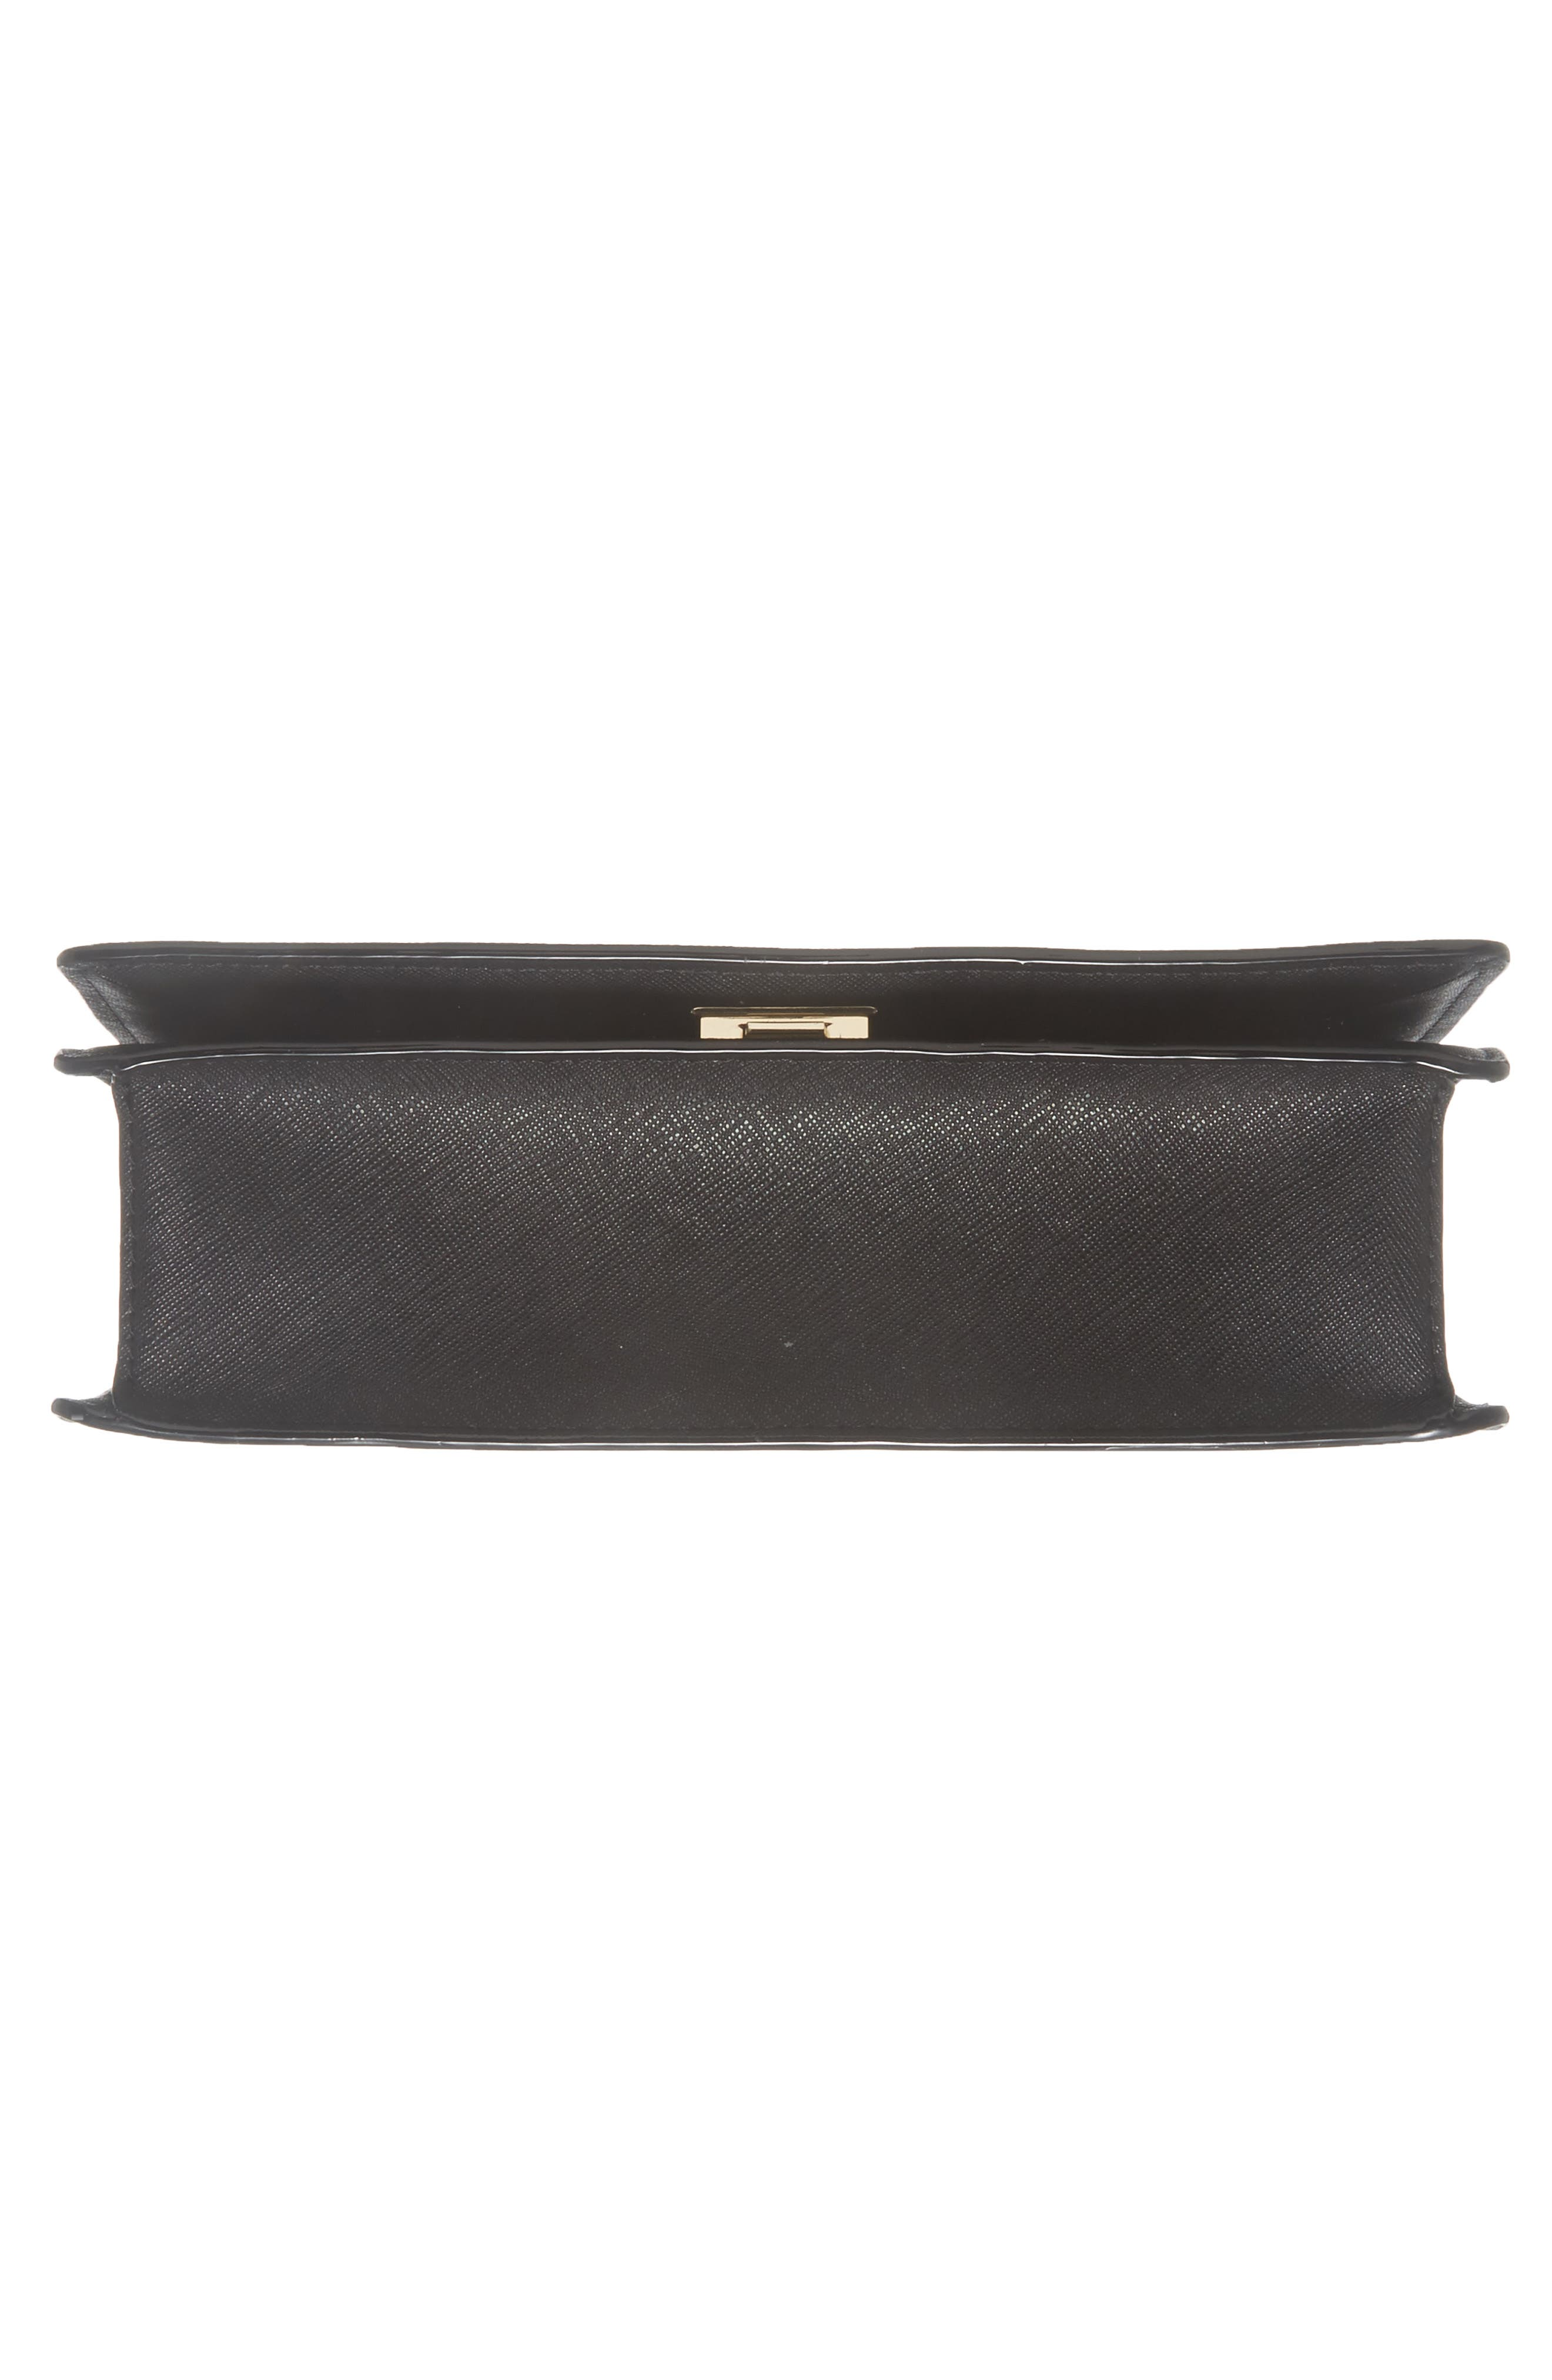 cameron street marci leather shoulder bag,                             Alternate thumbnail 6, color,                             BLACK